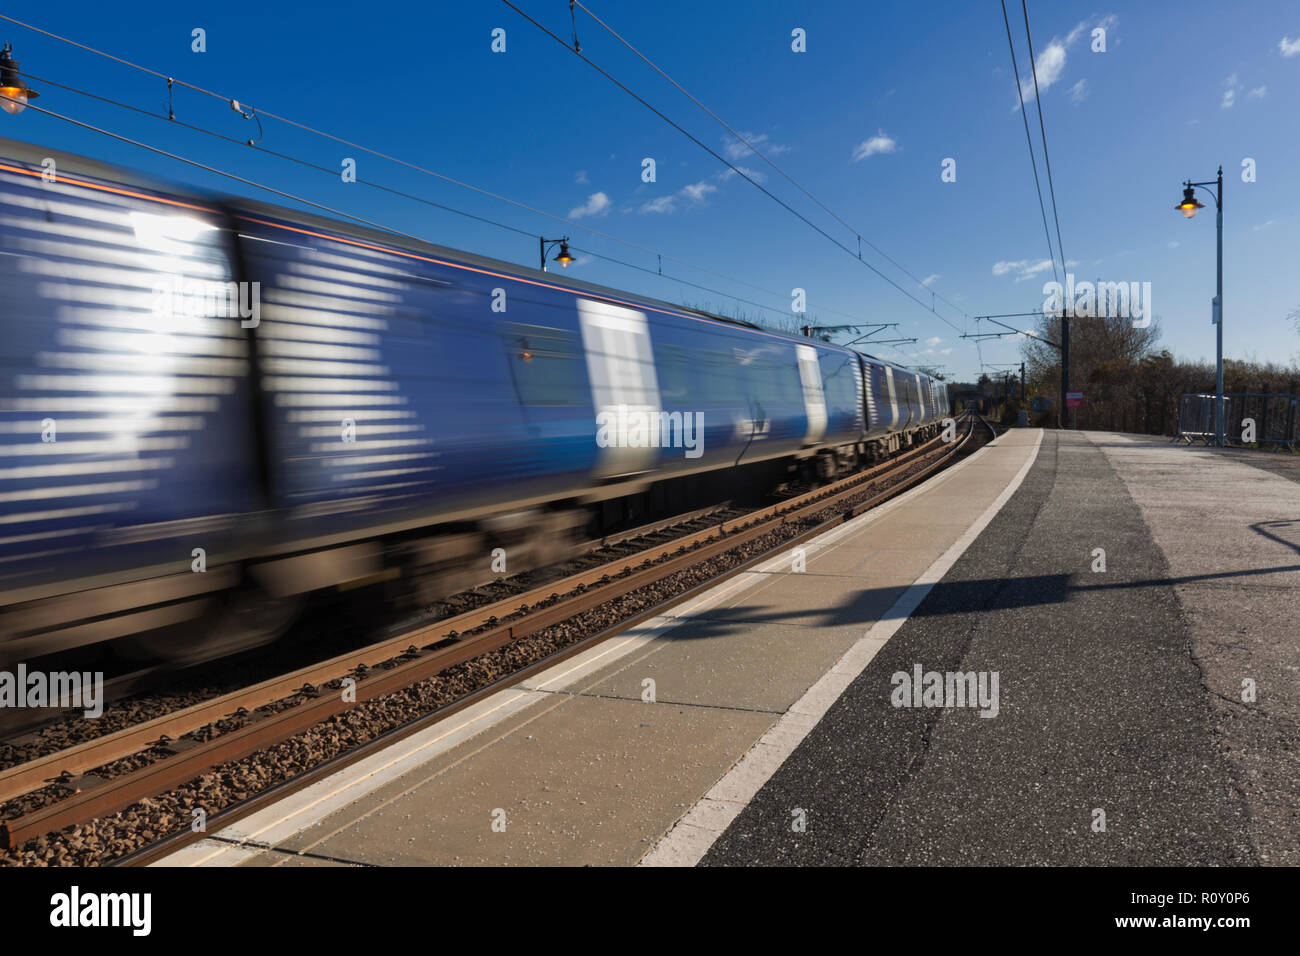 A Scotrail class 380 electric train departing Troon railway station - Stock Image